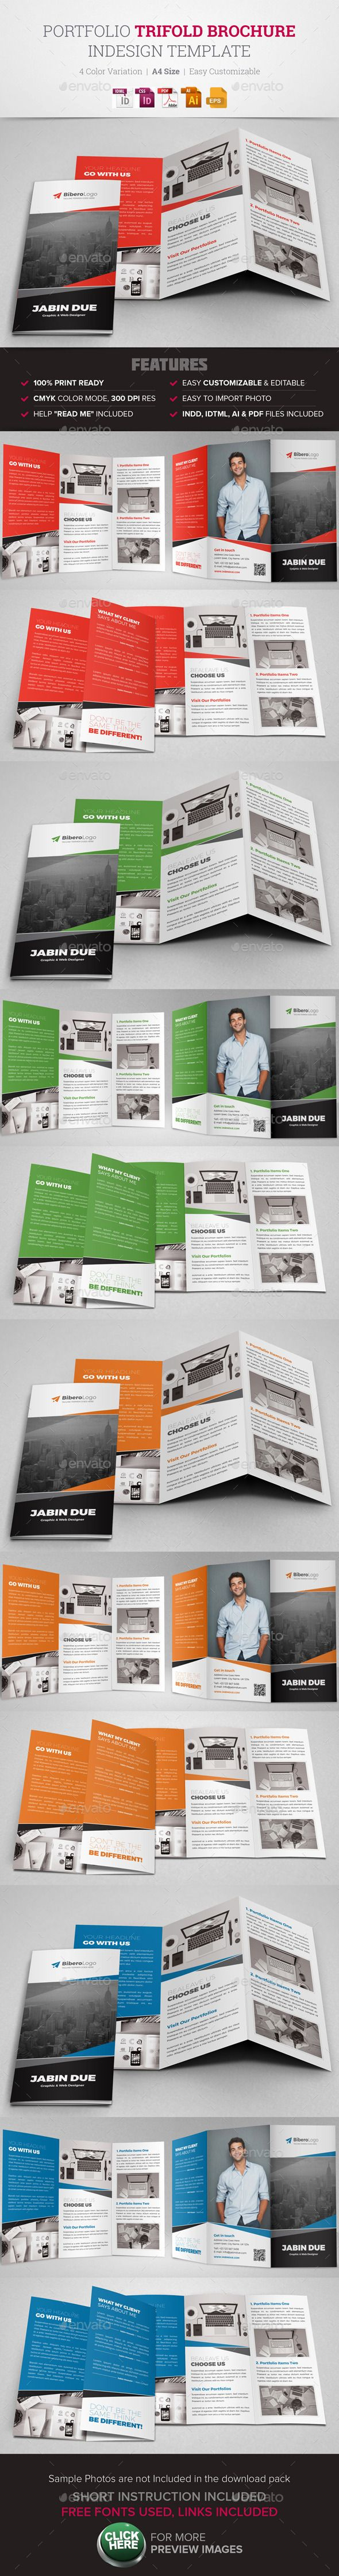 Portfolio trifold brochure indesign template design brochures and business flyer for Catalogue templates indesign